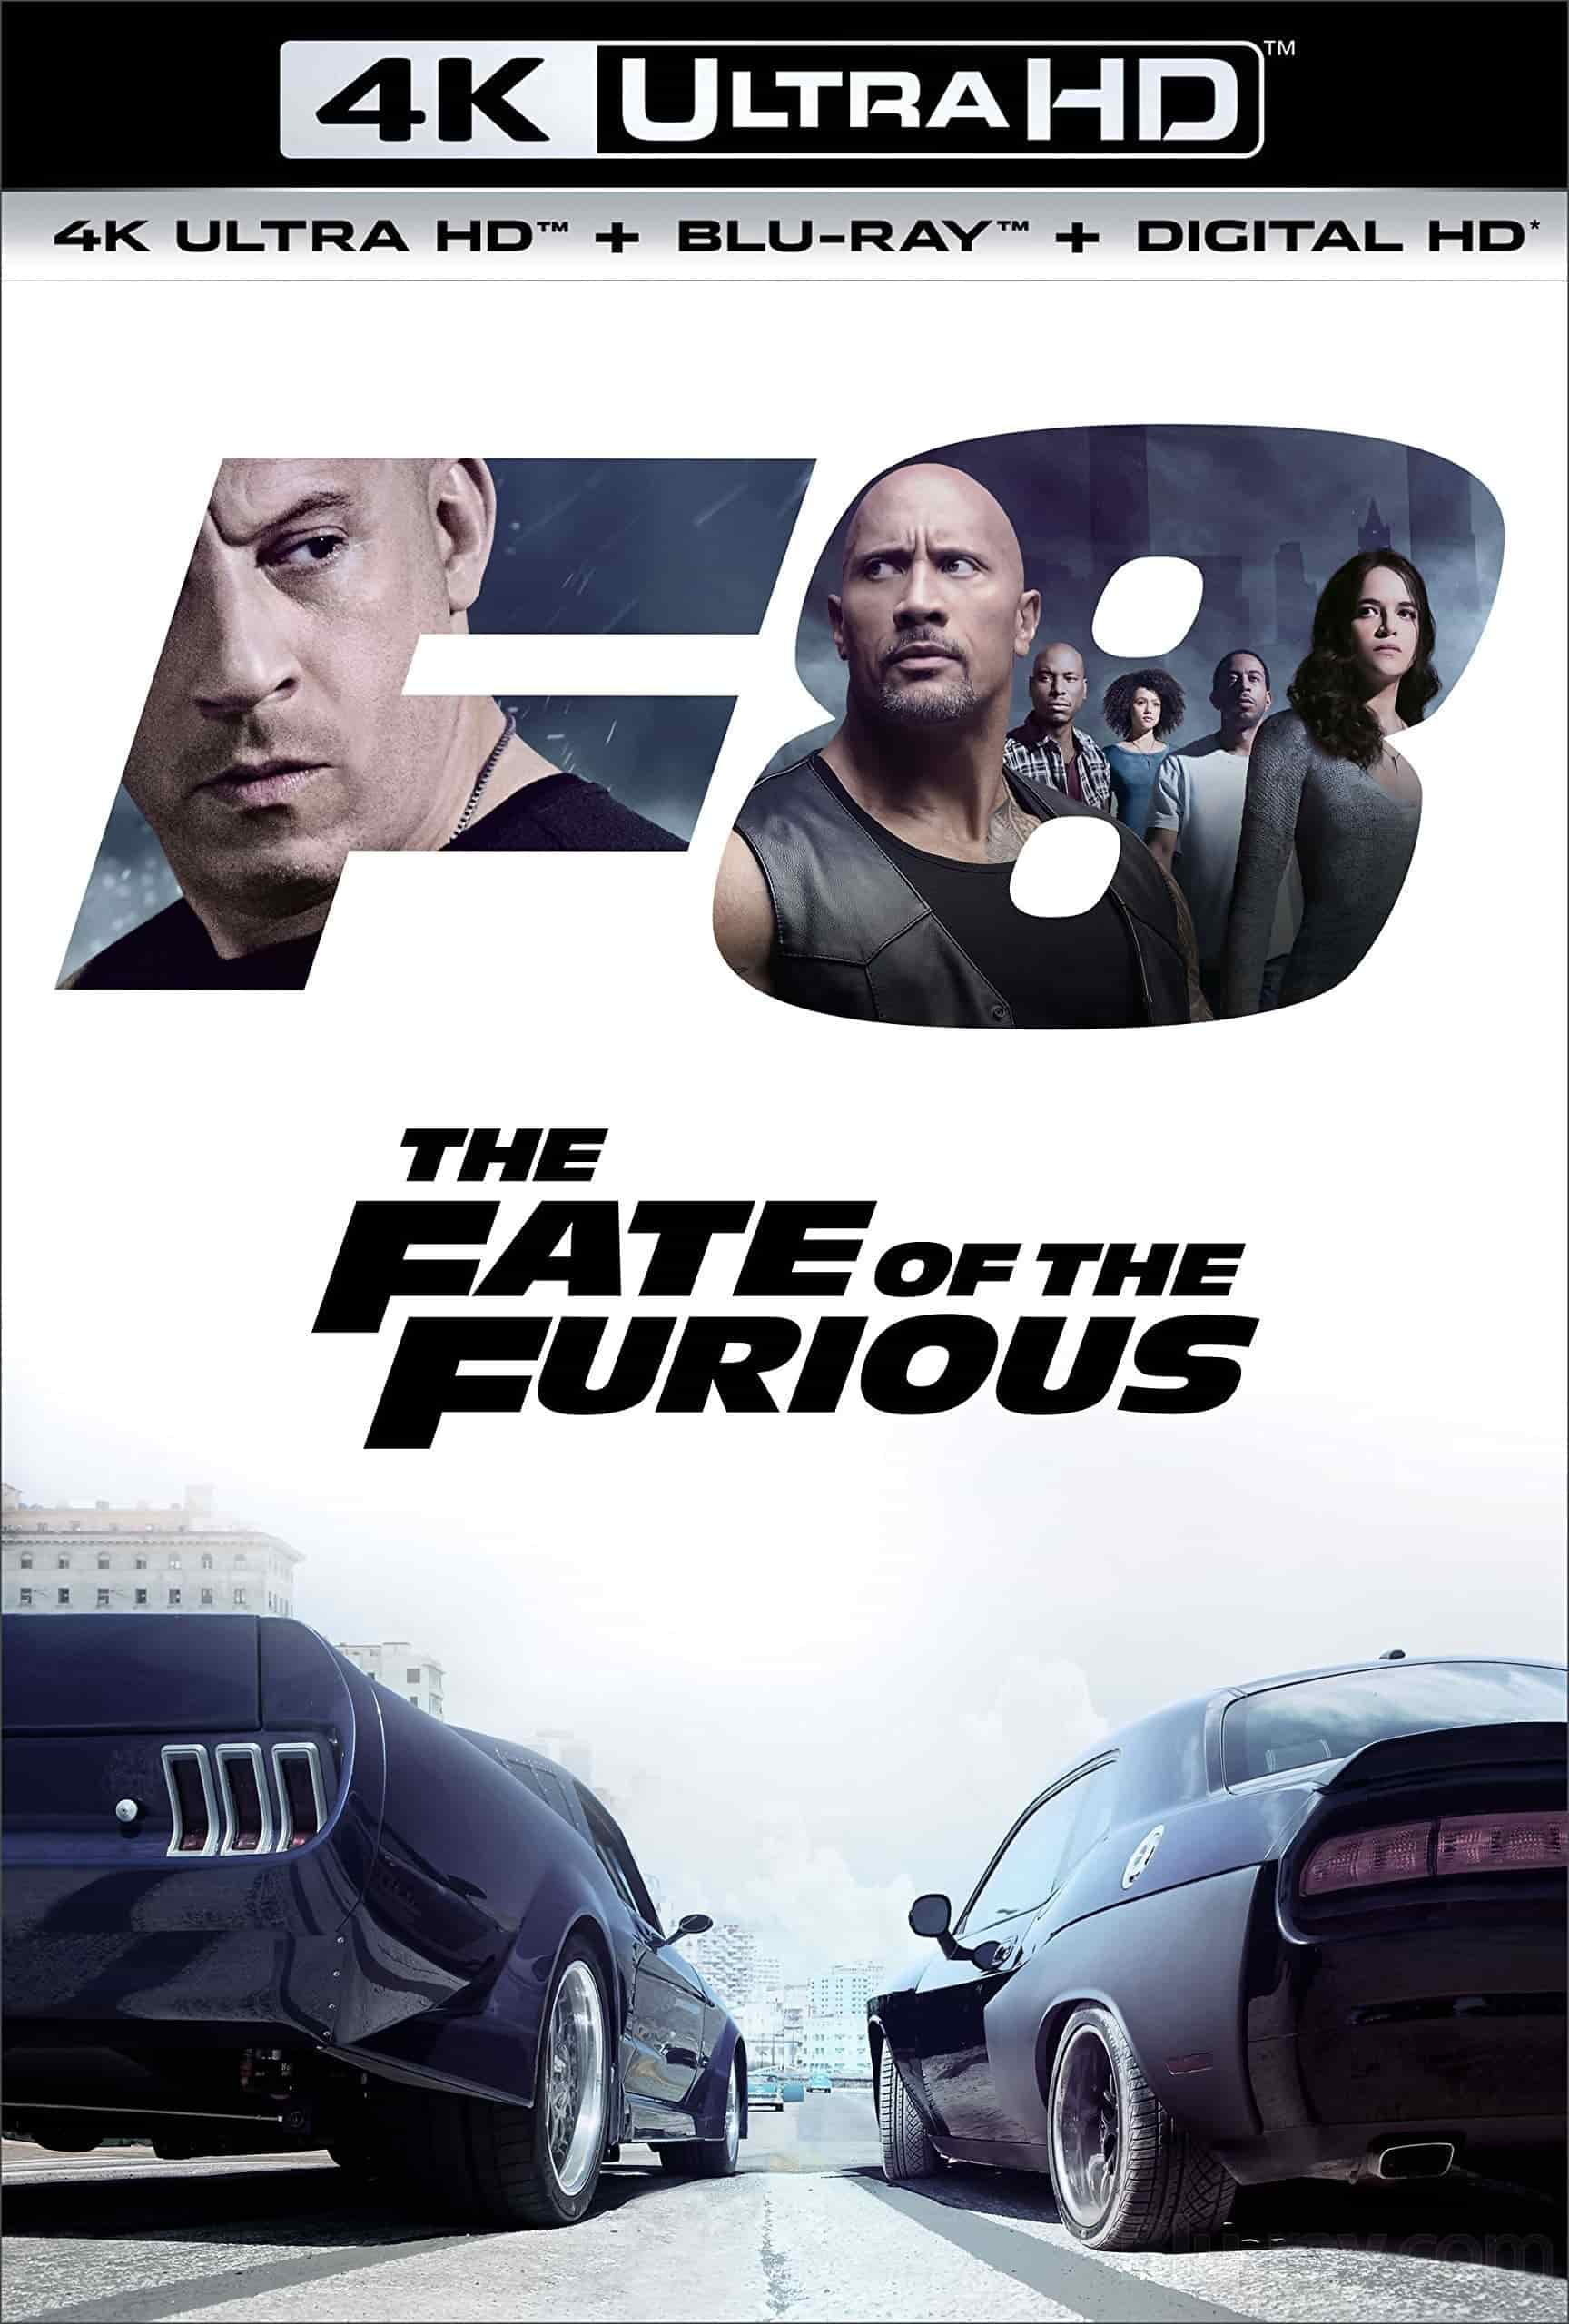 The Fate of the Furious 4K 2017